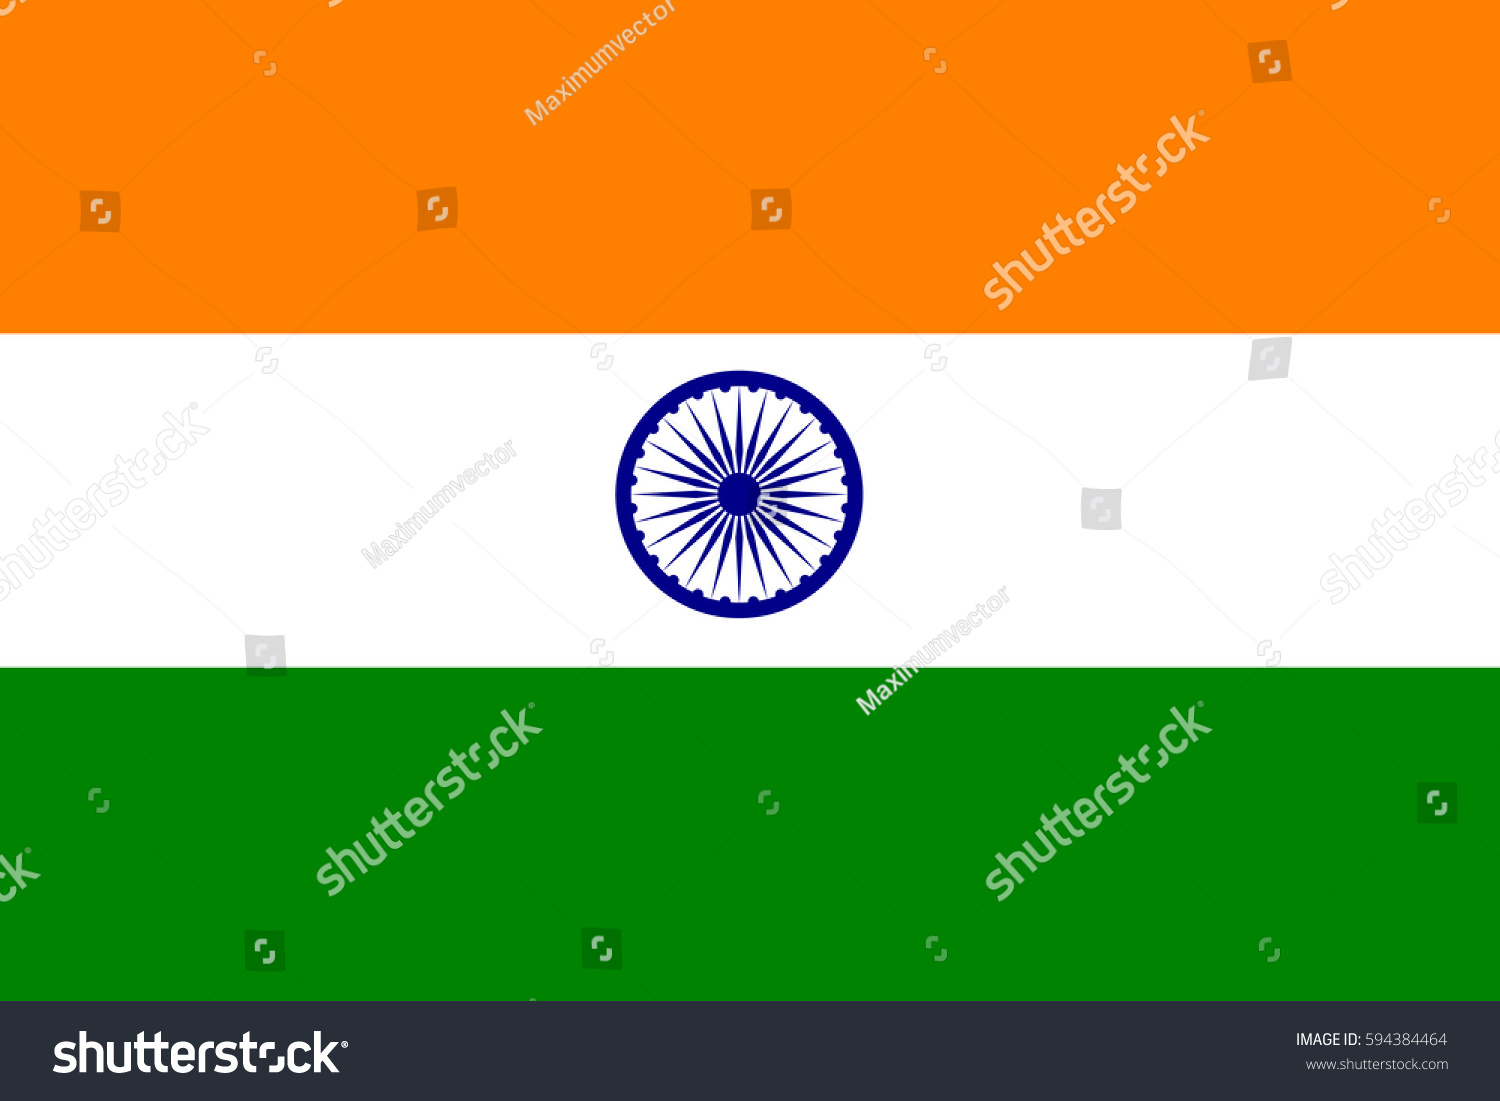 India Flag Colors: India Flag Official Colors Proportion Correctly Stock